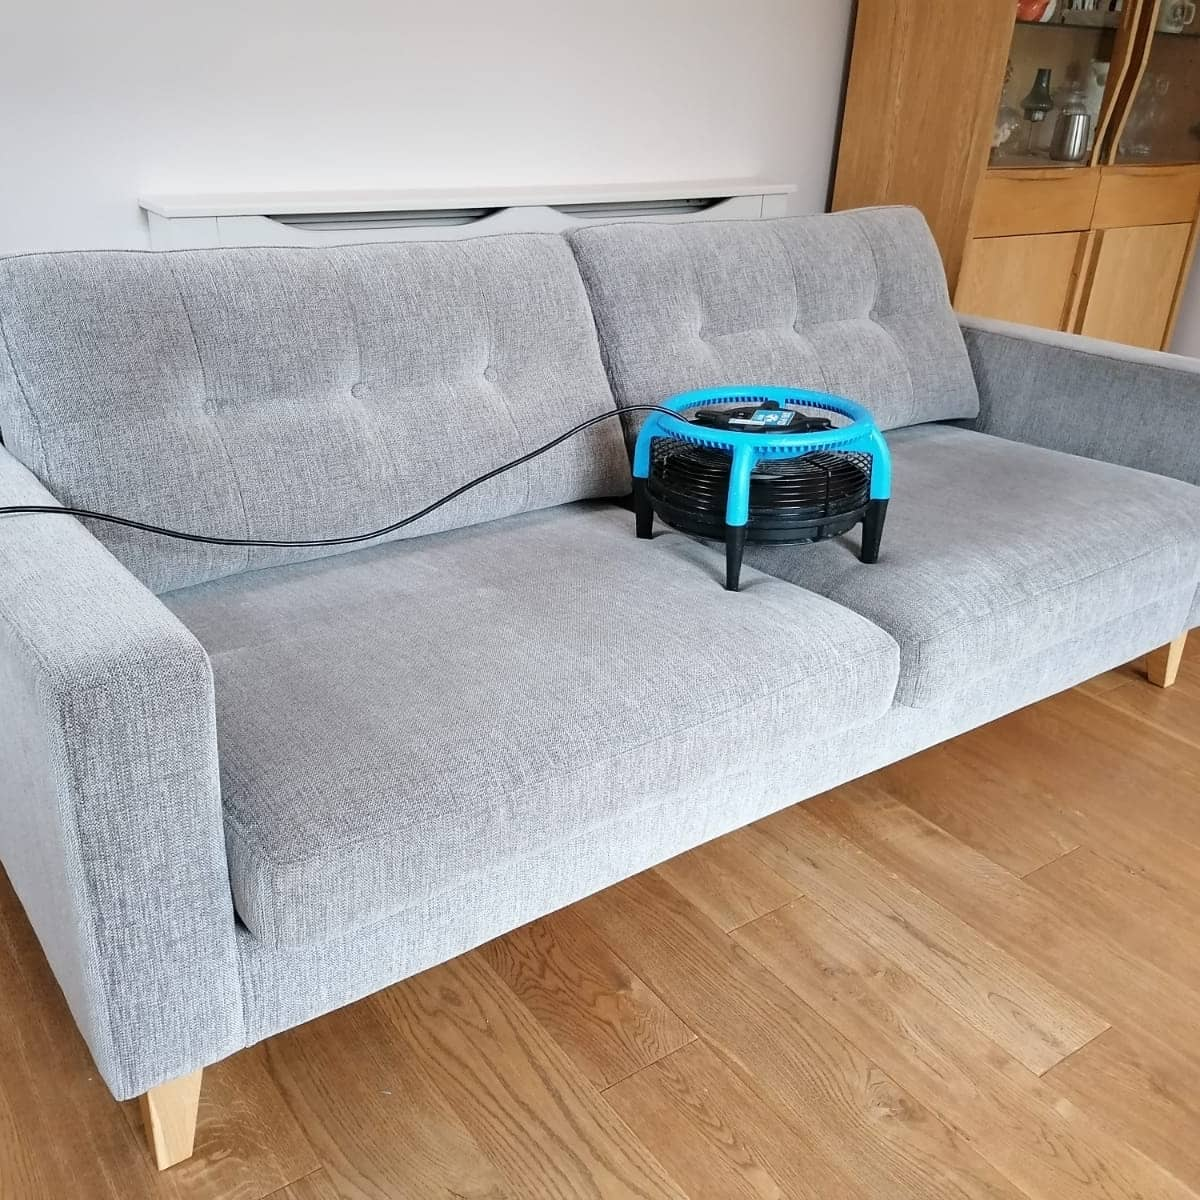 From Rodley too Calverley for a Christopher Pratt's purchased suite cleaned correctly with accelerated drying. If you are looking for quality services from highly trained and experienced technicians contact Fabricmax. #calverley #rodley #furniturecare #carpetcleaners https://t.co/bsk2ZiOkE7